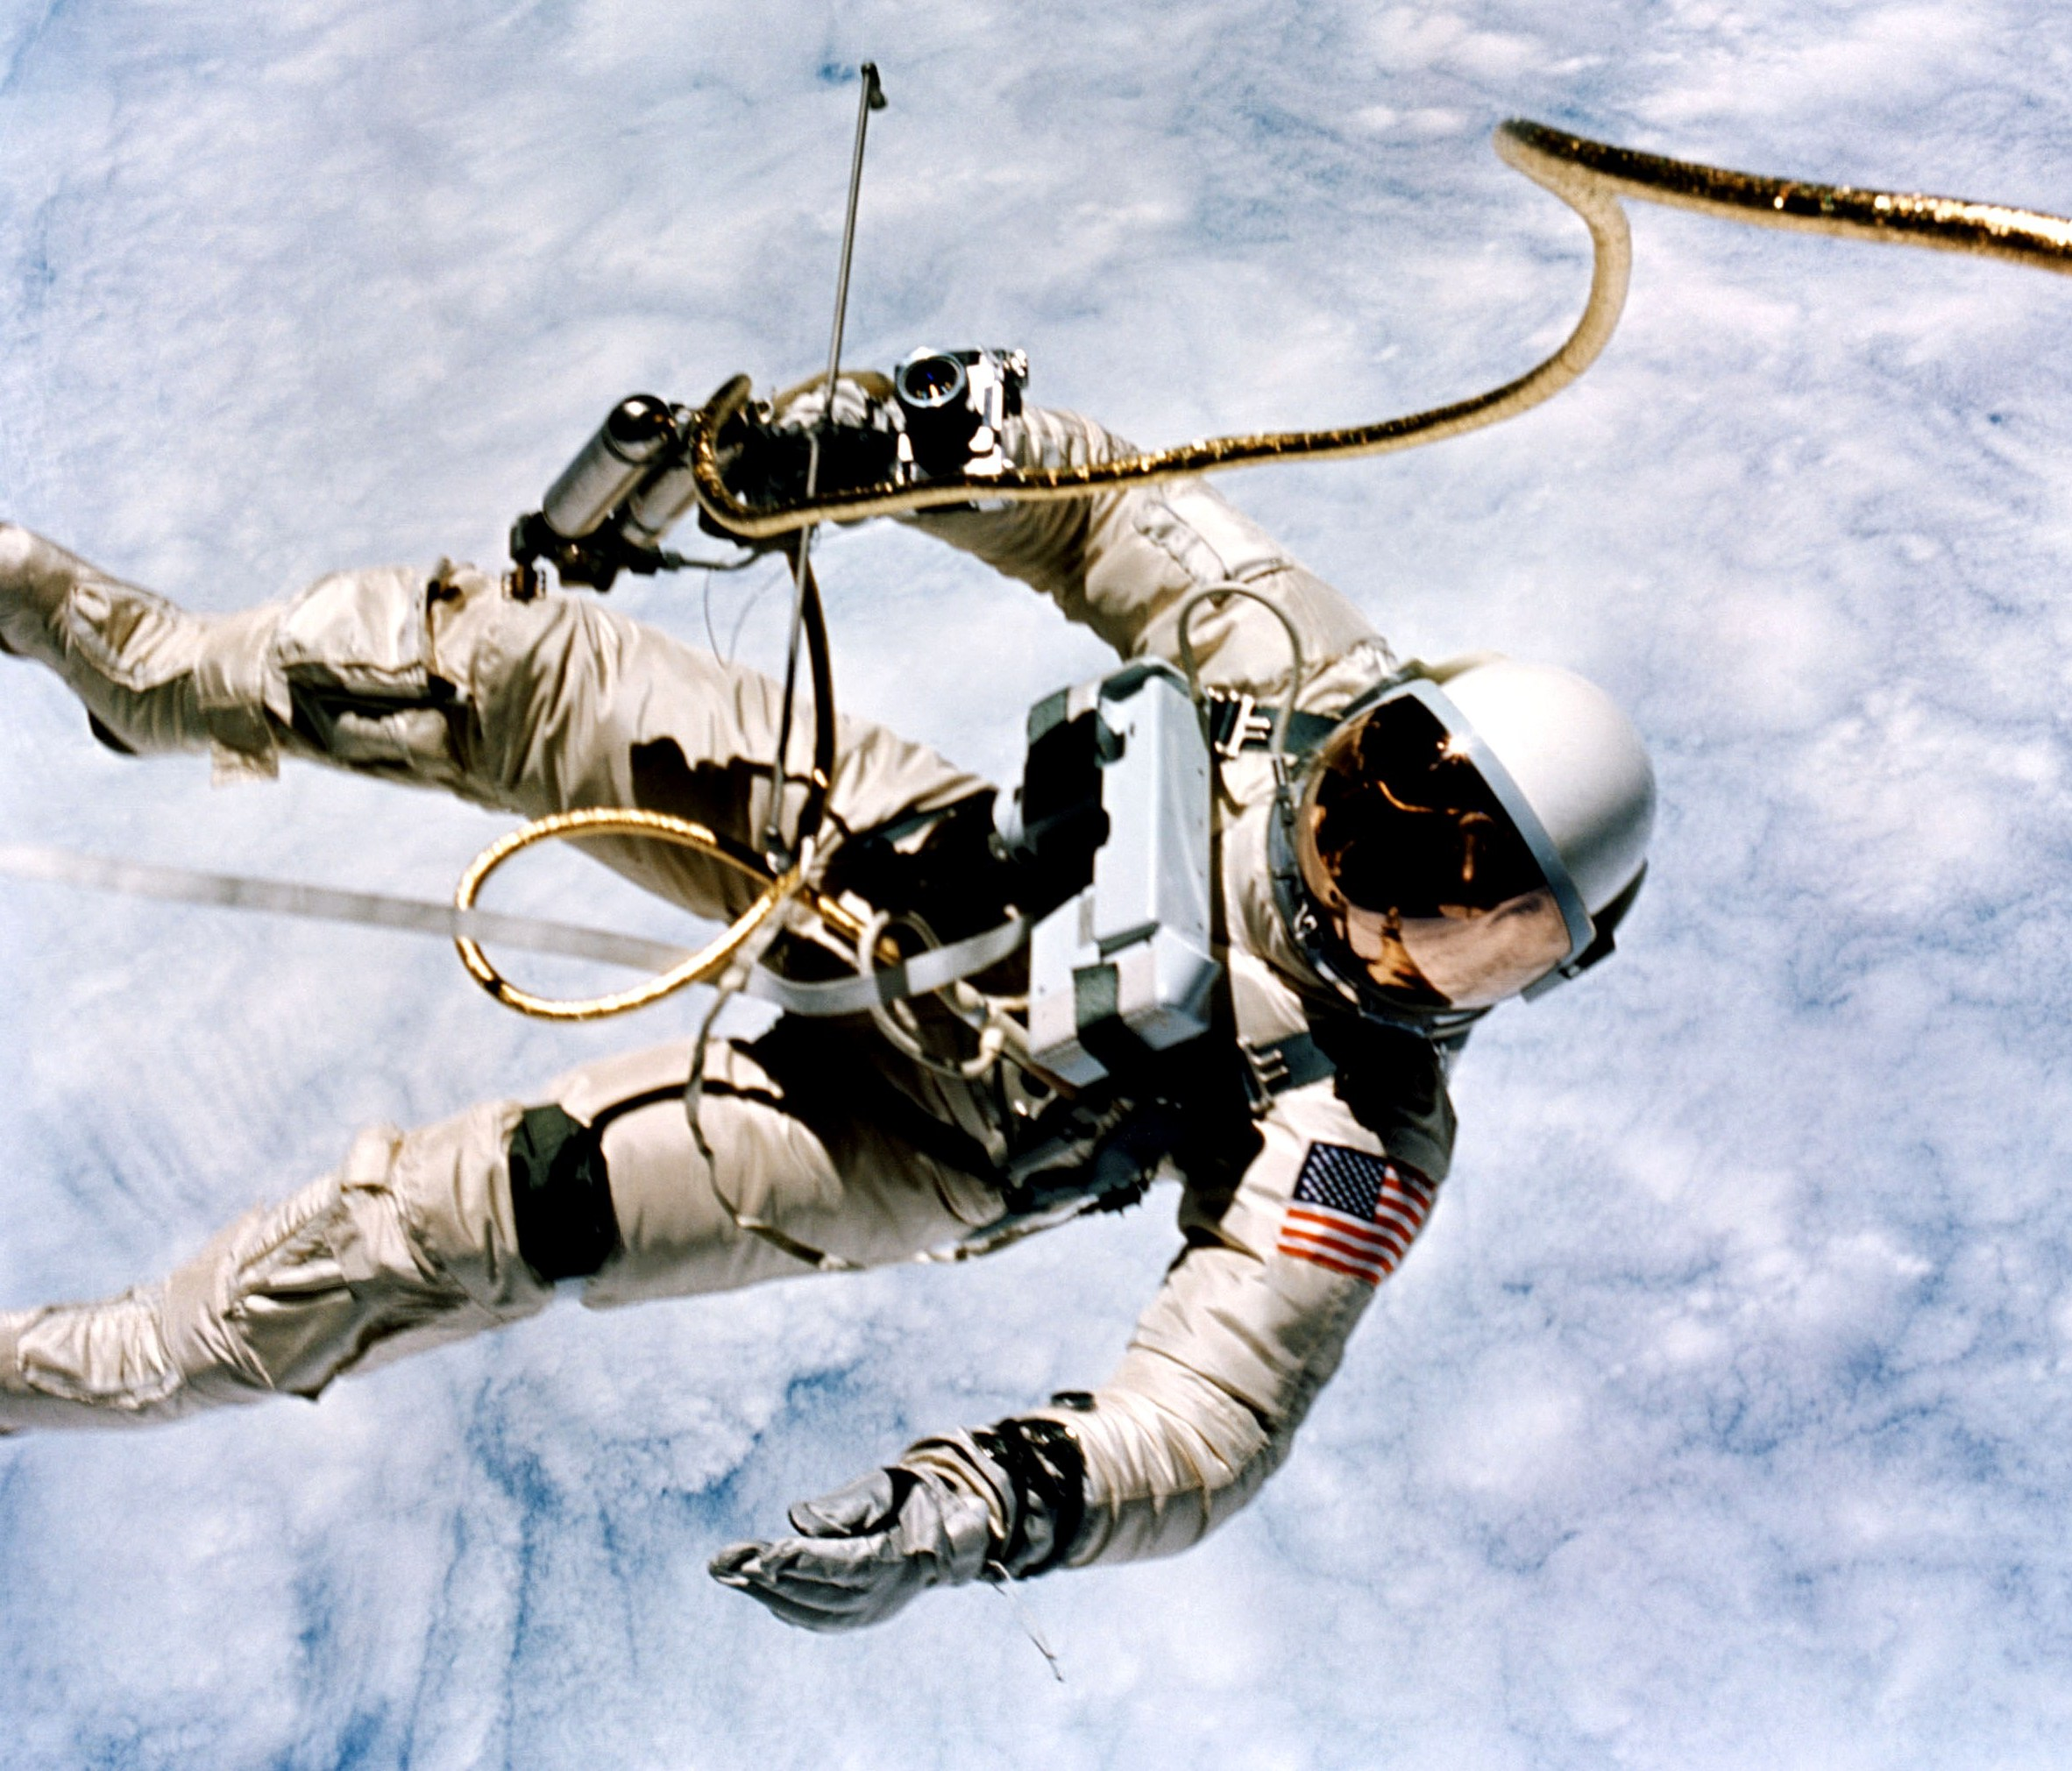 Ed White floating in space during the first American EVA on Gemini IV